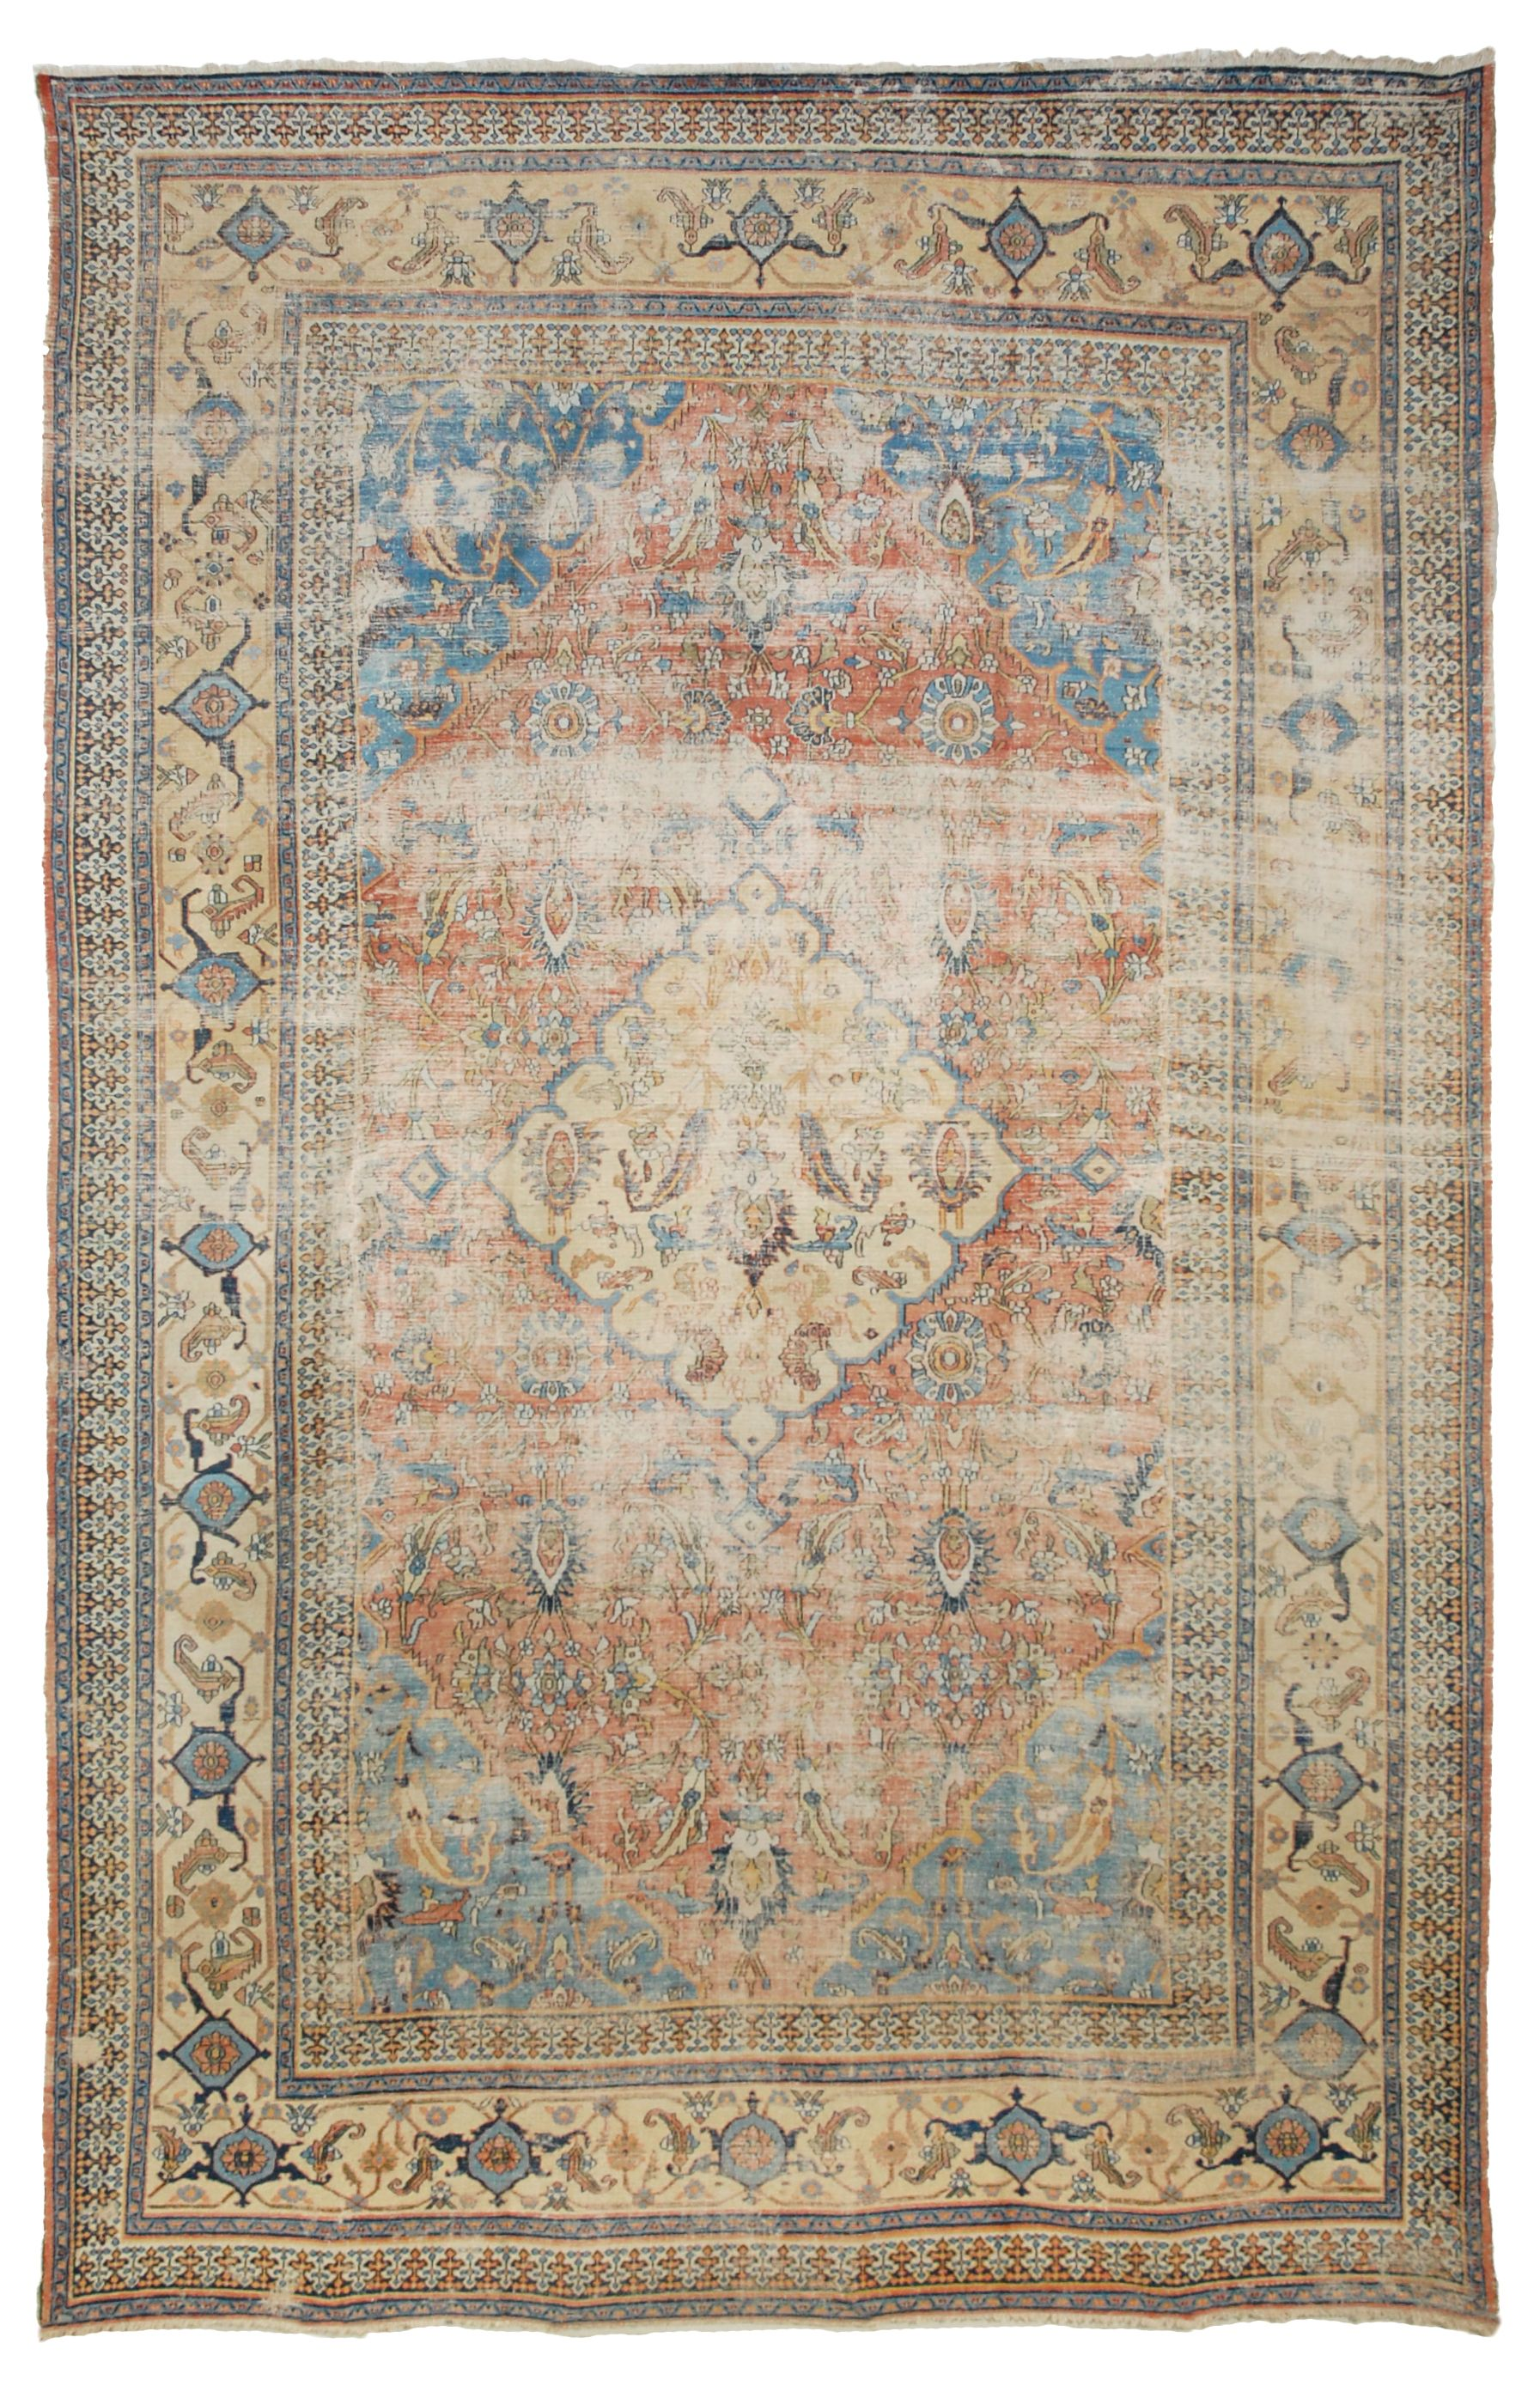 Dorokhsh Antique Rug Woven Is Antique Distressed Rugs